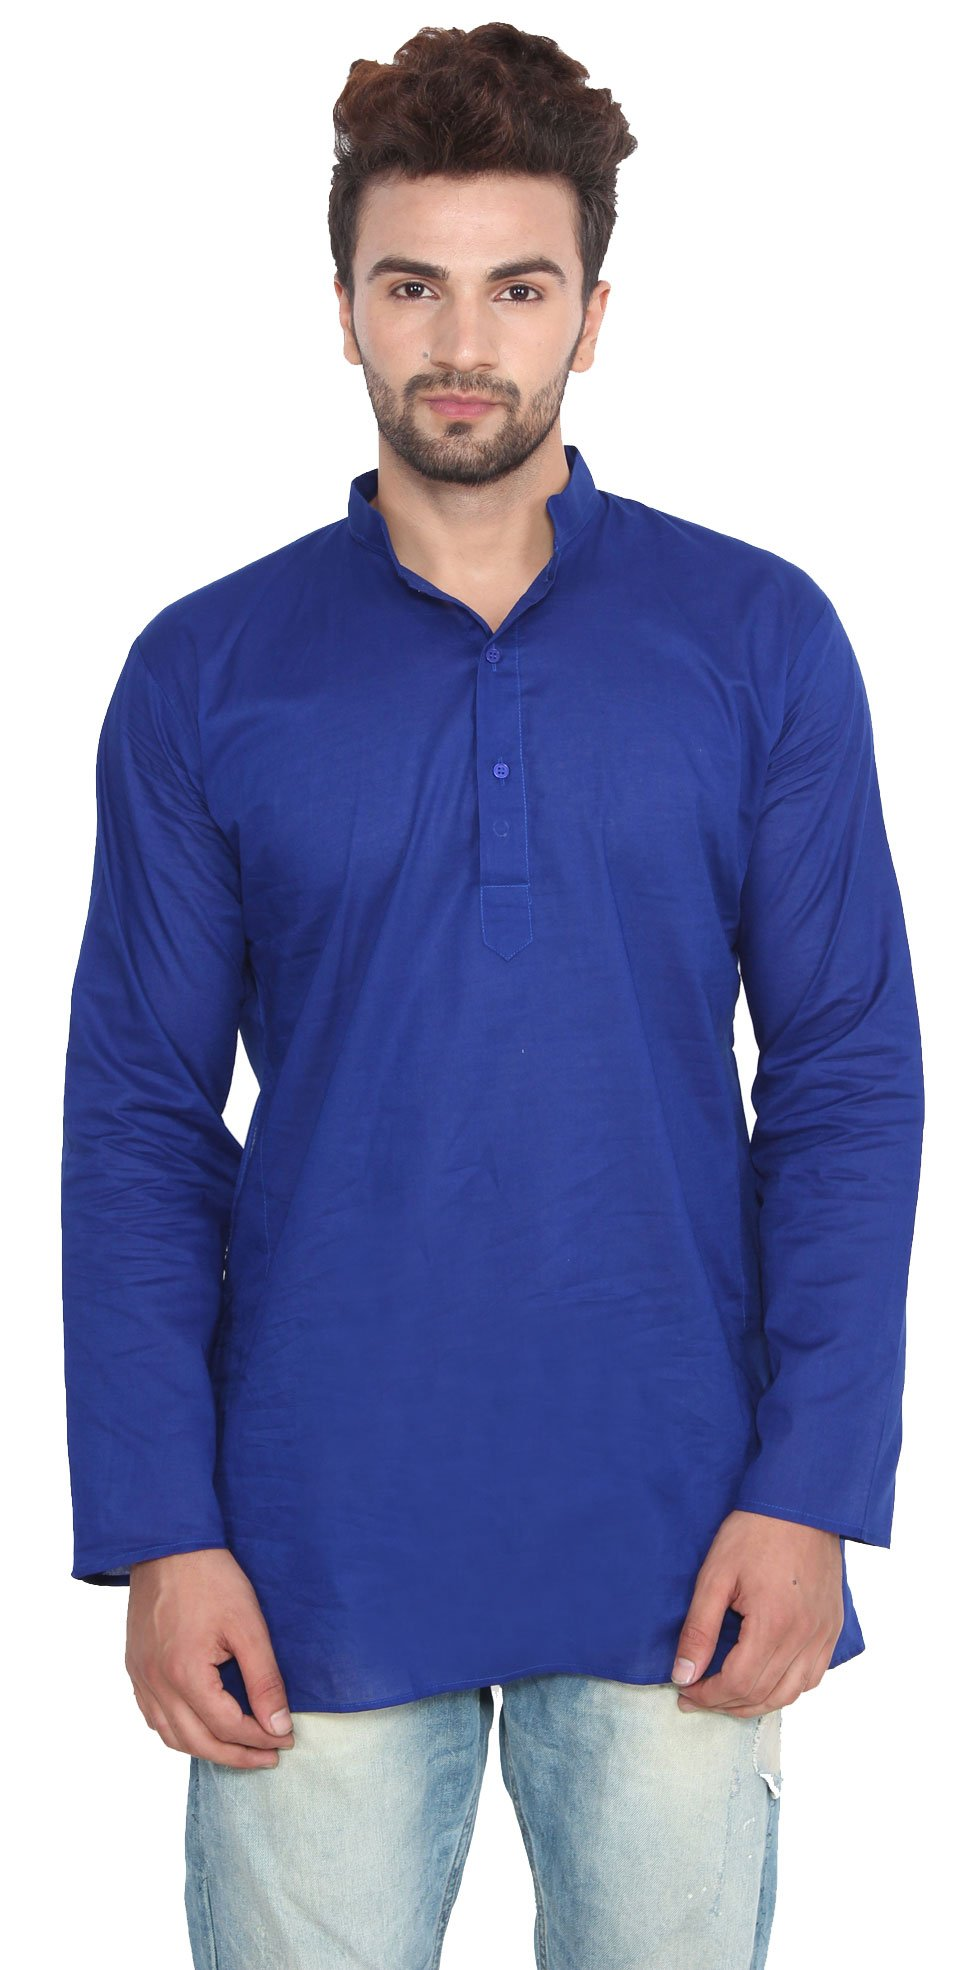 Cotton Dress Mens Short Kurta Shirt India Fashion Clothes (Blue, S)